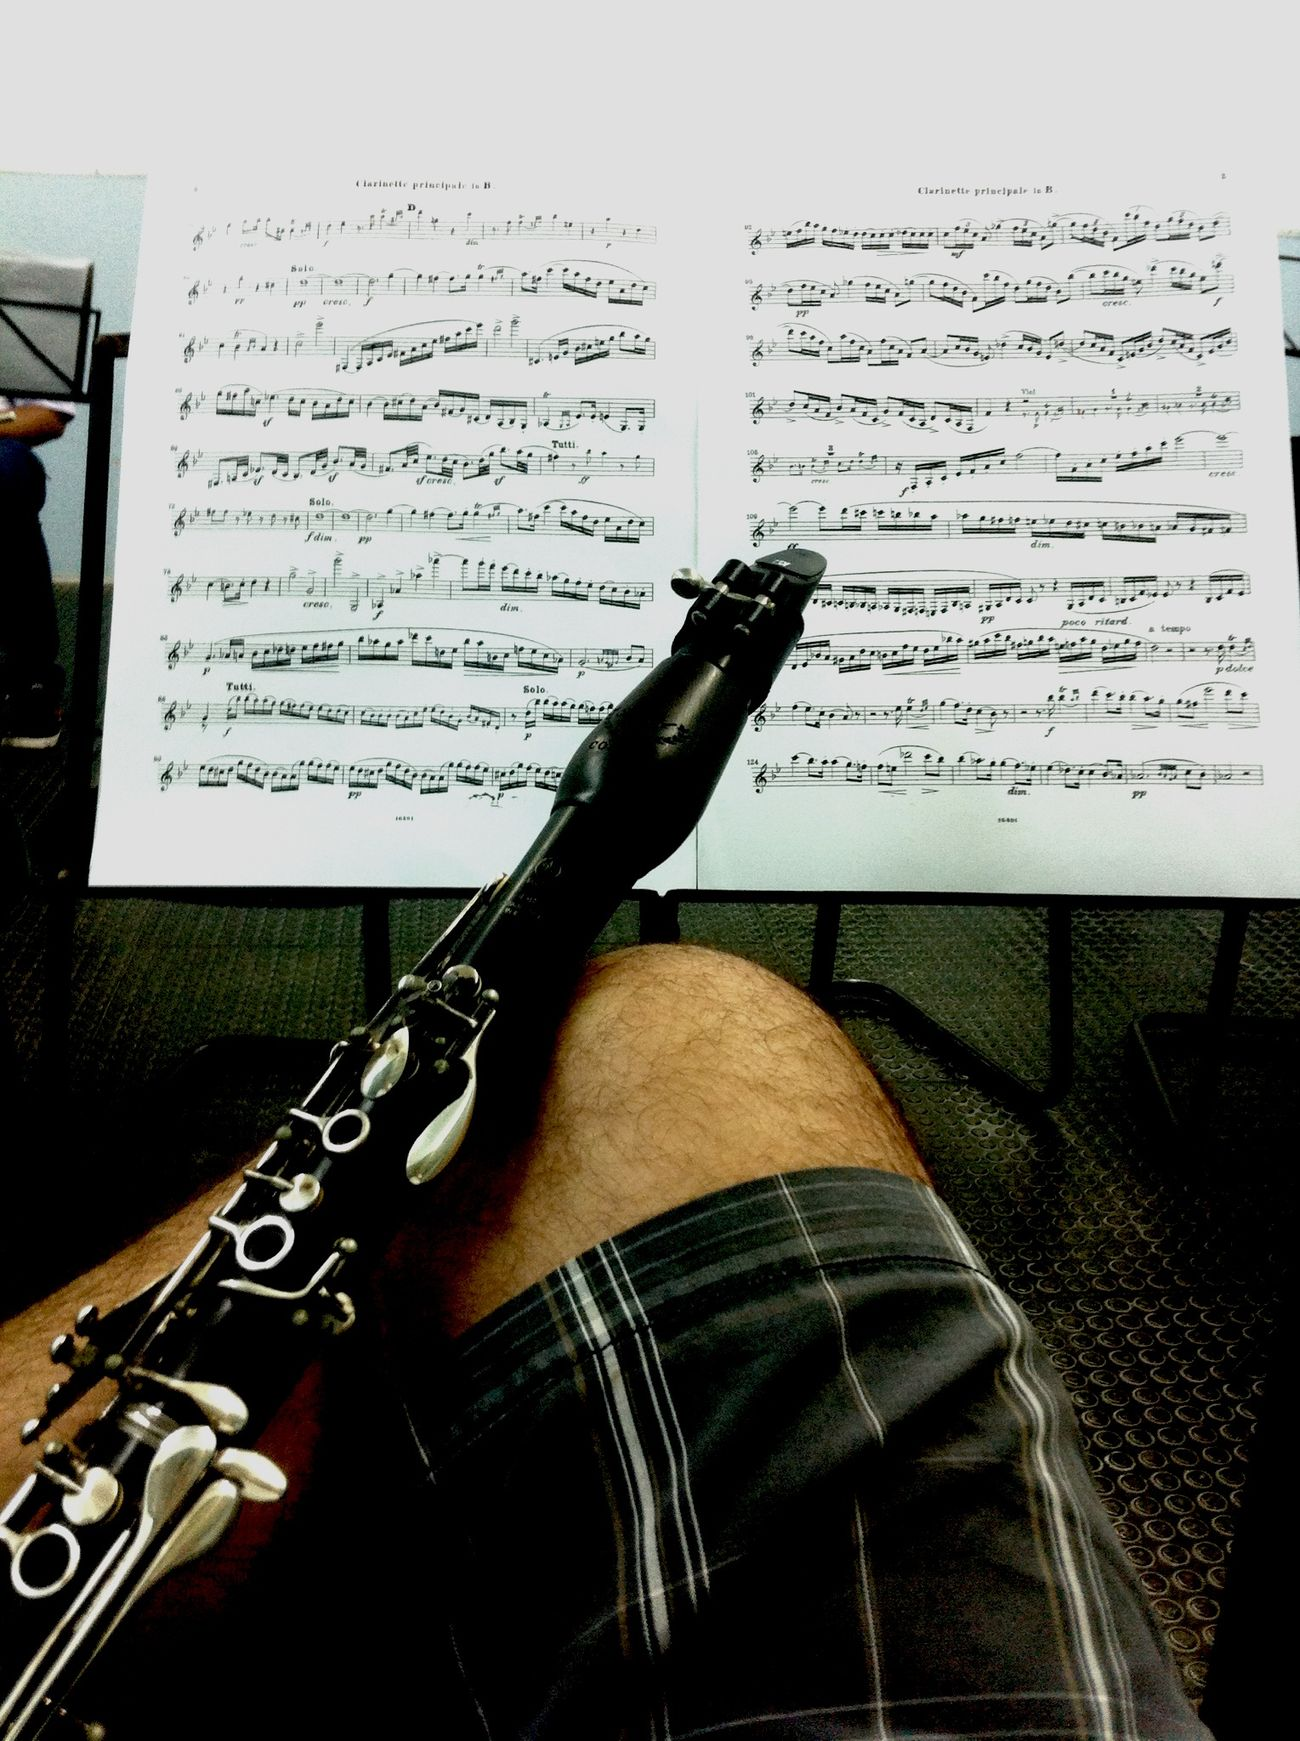 Clarinet Clarinetist Musician Clarinets Clarinetlife Playing Clarinet Concerto Concert Spohr Allegro